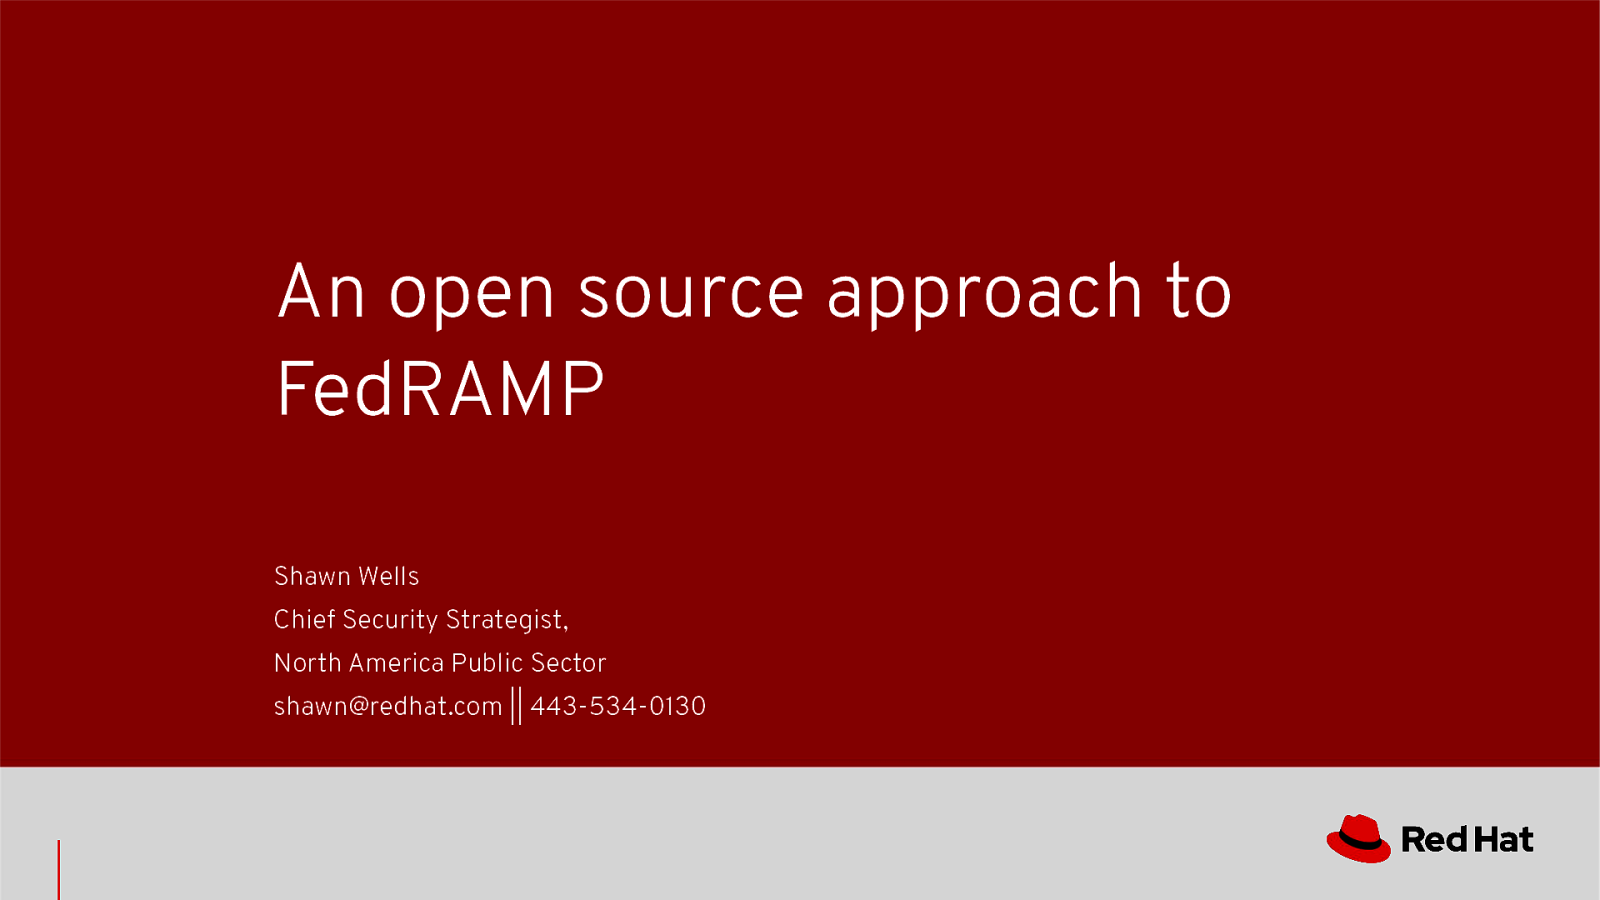 An open source approach to FedRAMP